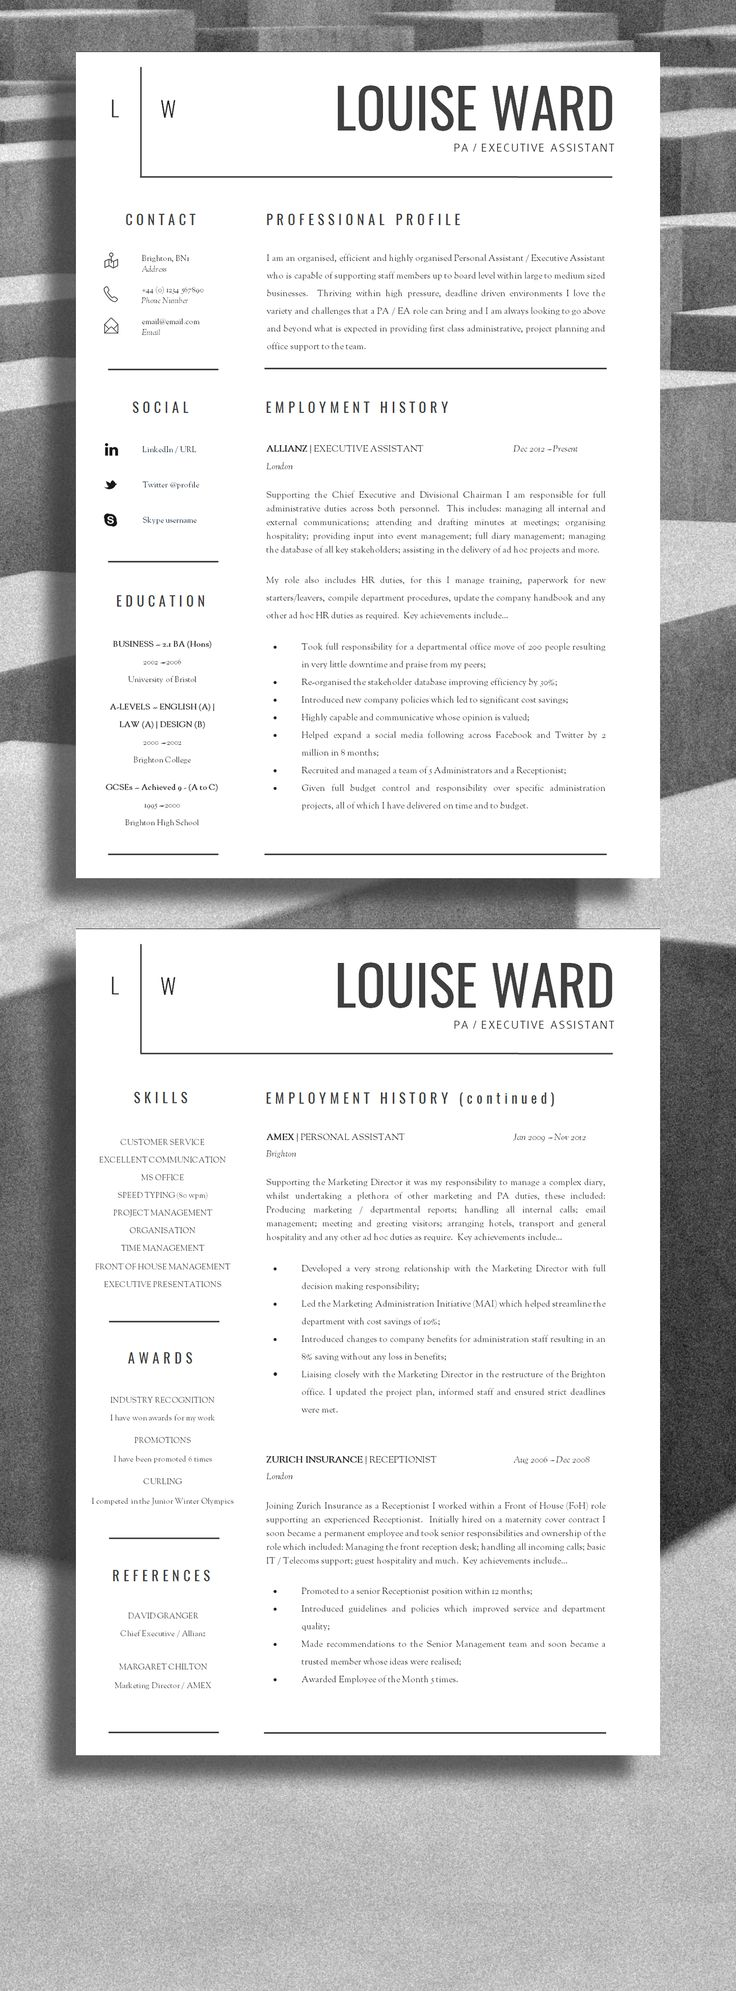 190 best images about resume design  u0026 layouts on pinterest